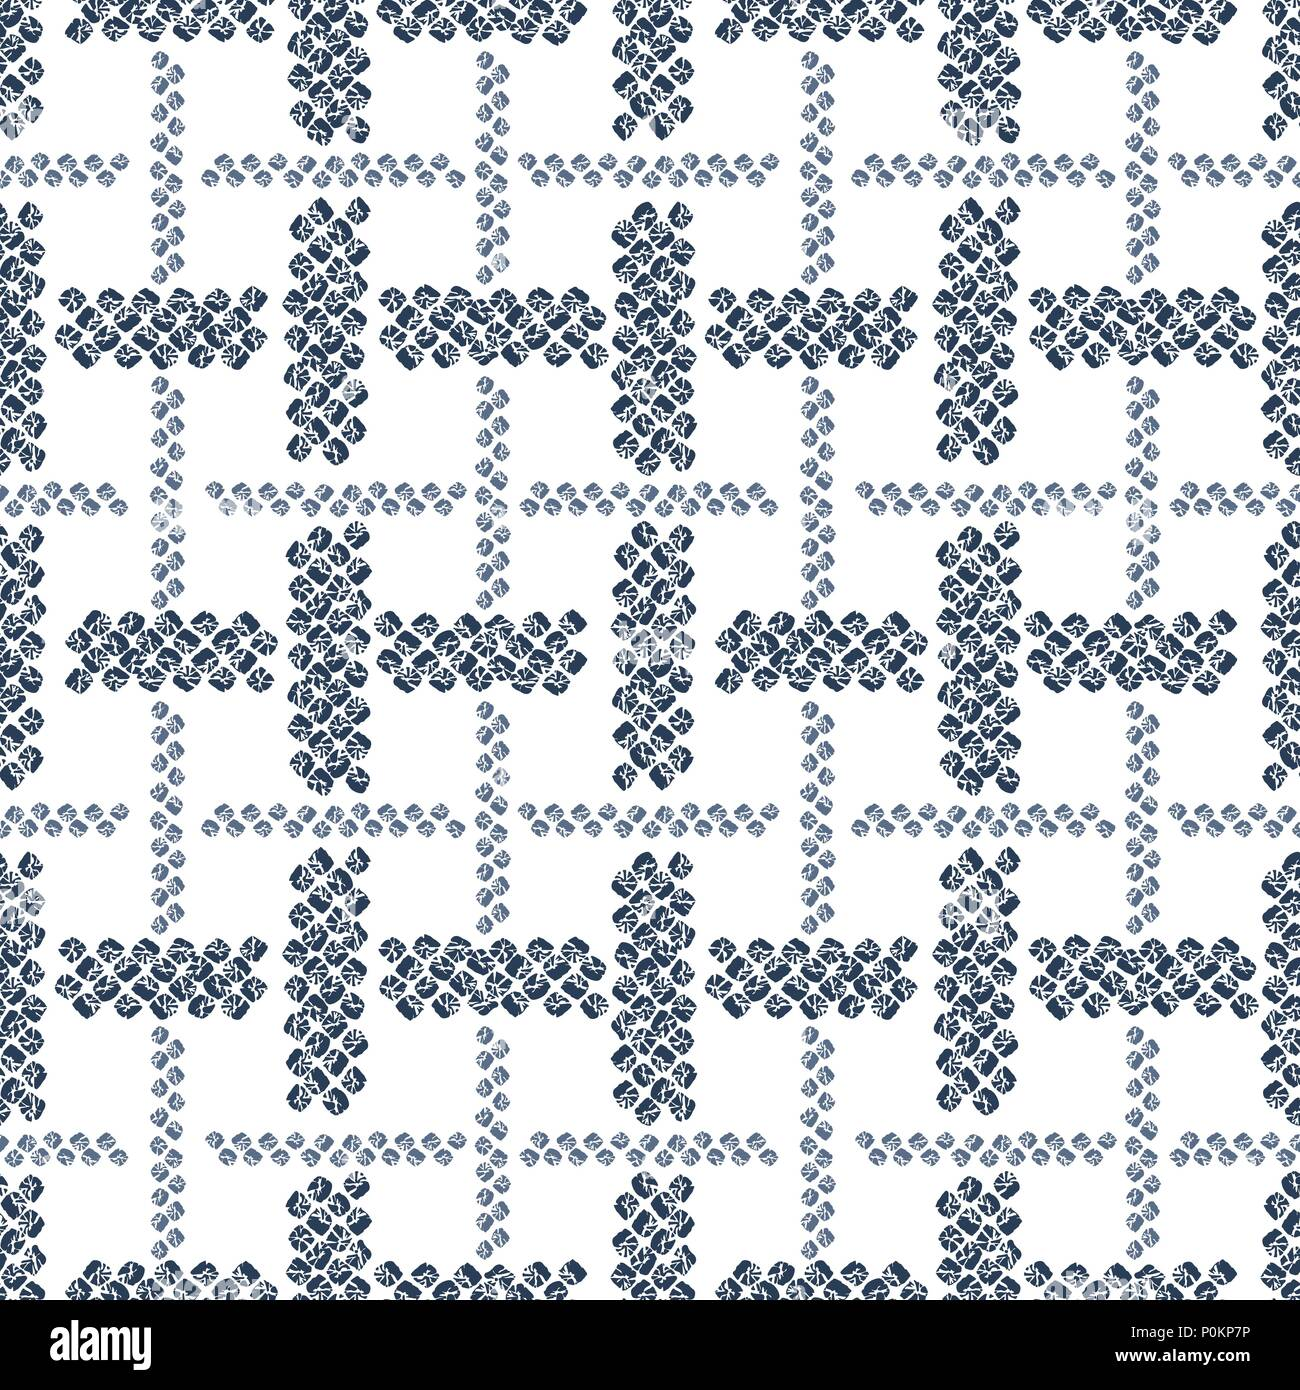 Japanese Seamless Pattern White Background Indigo Color Classic Asian Dyeing Technique Plain Texture For Wallpaper